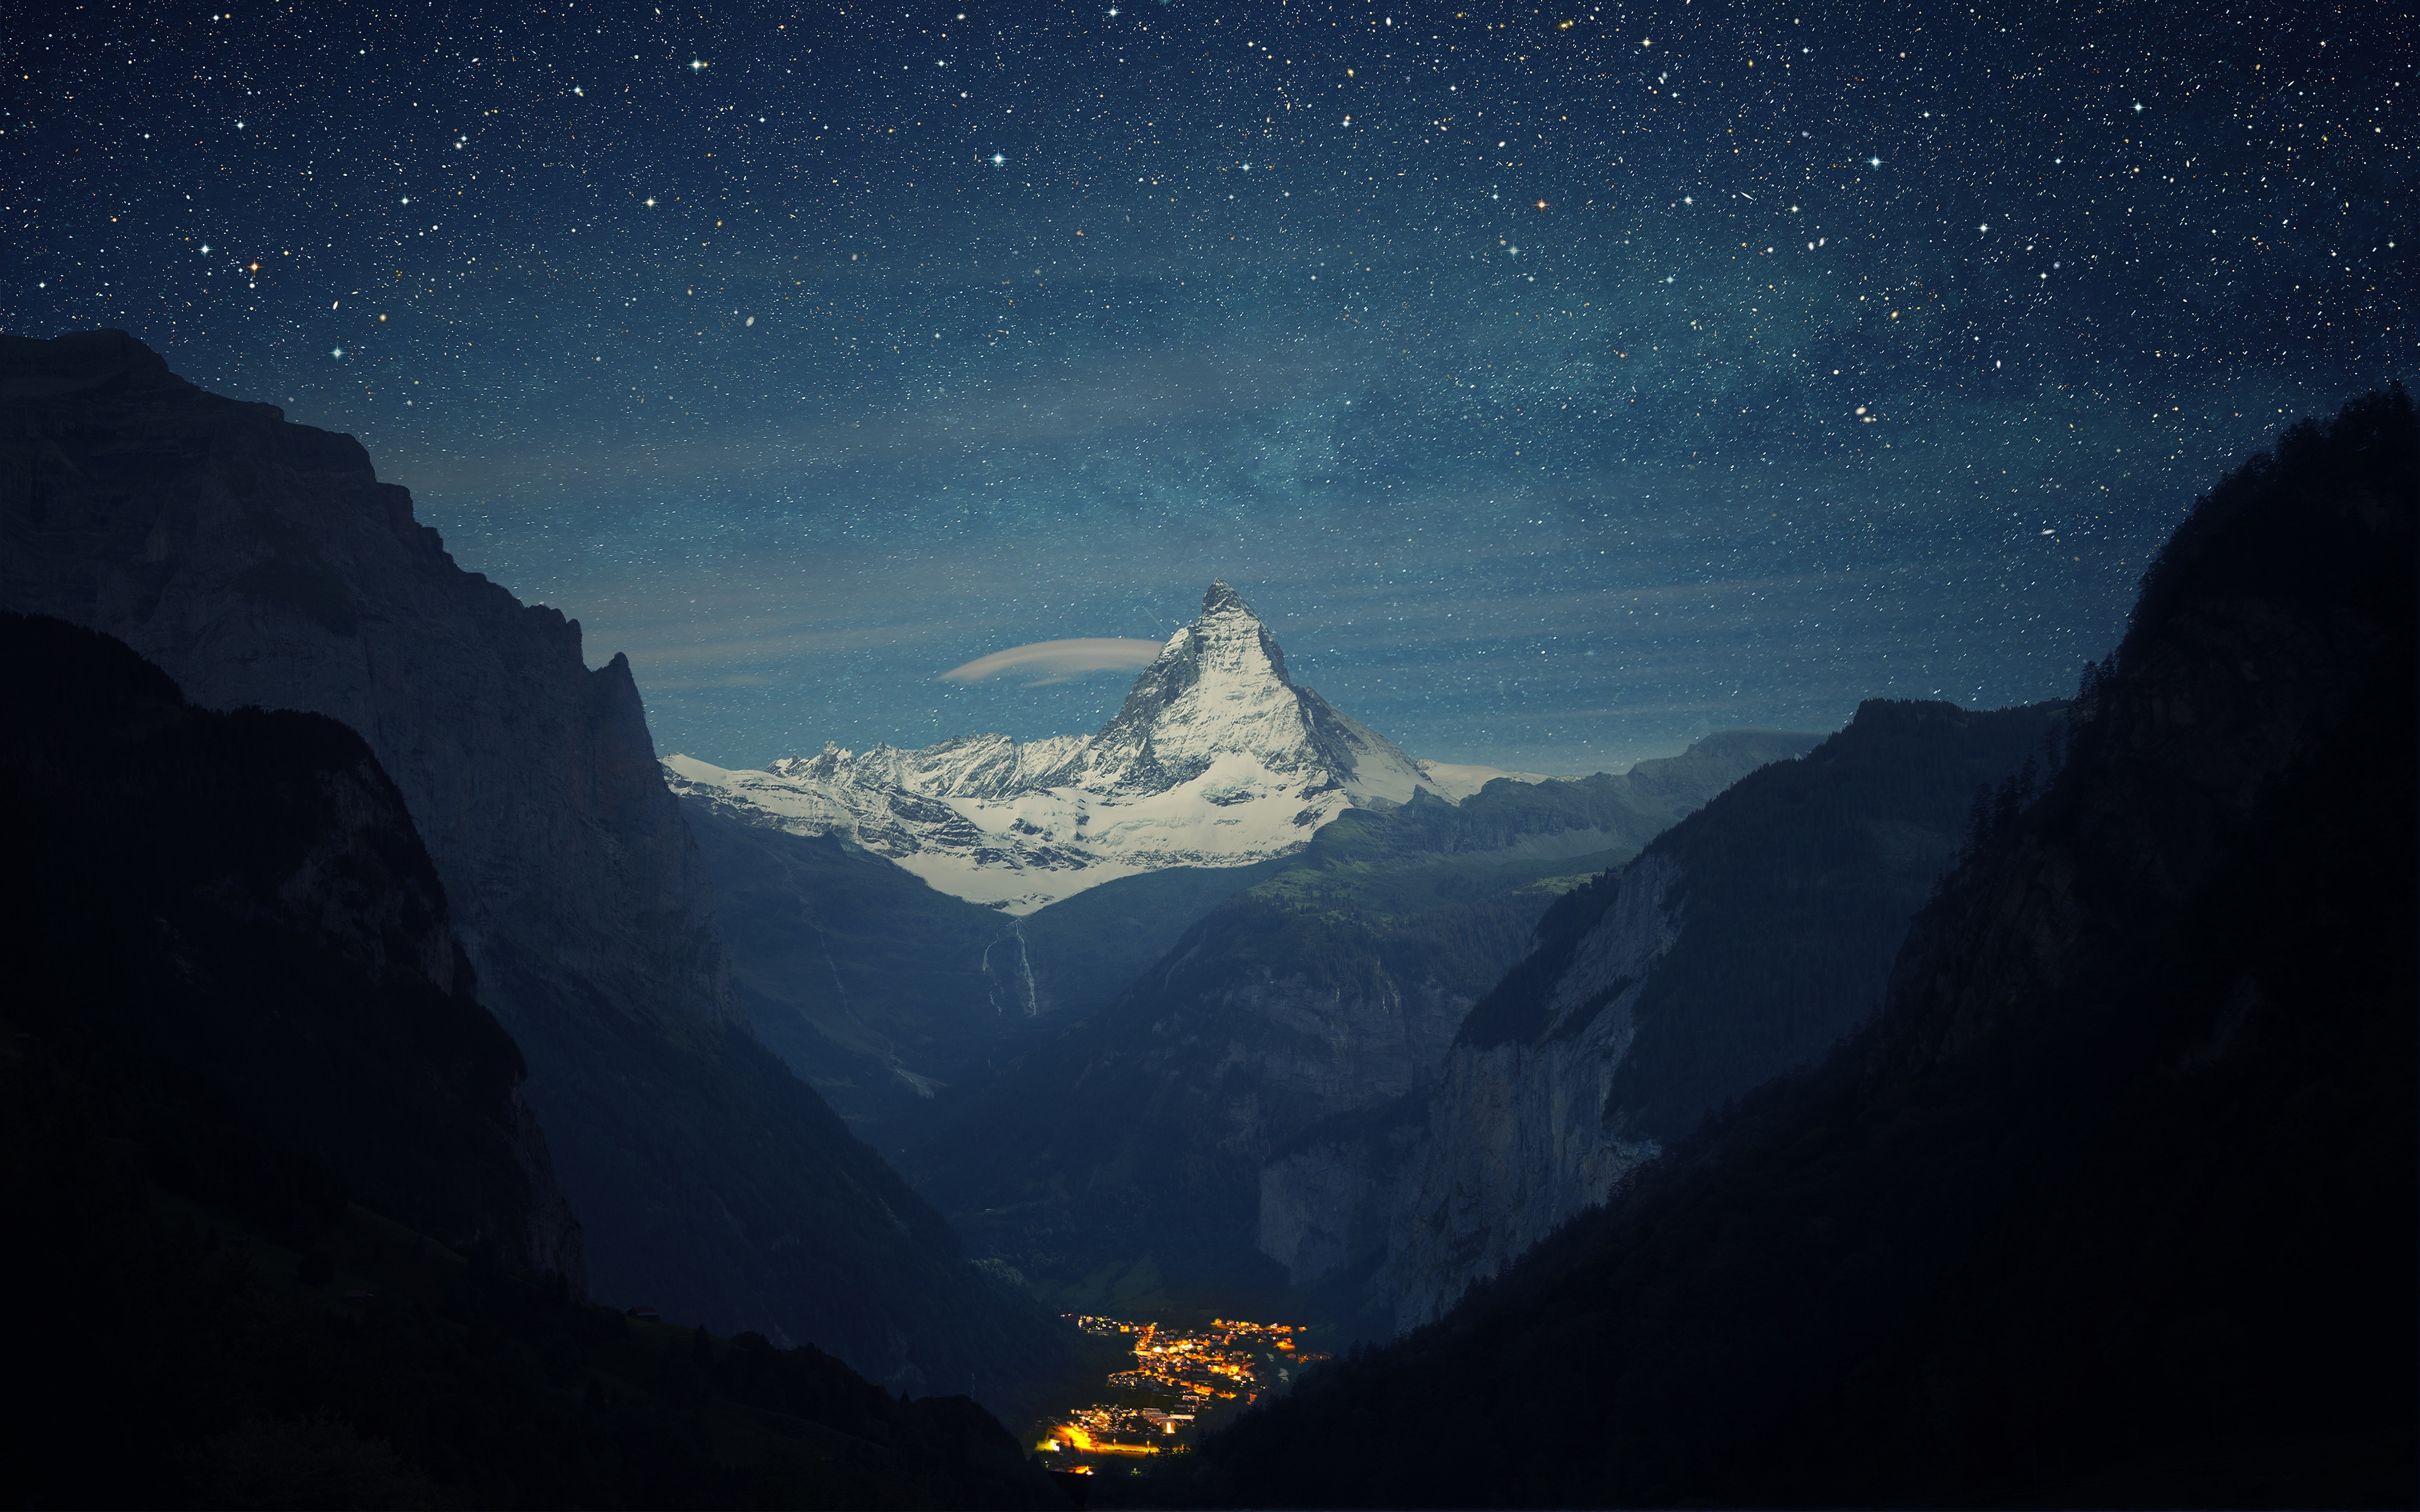 Wallpaper Snowy mountains with night stars